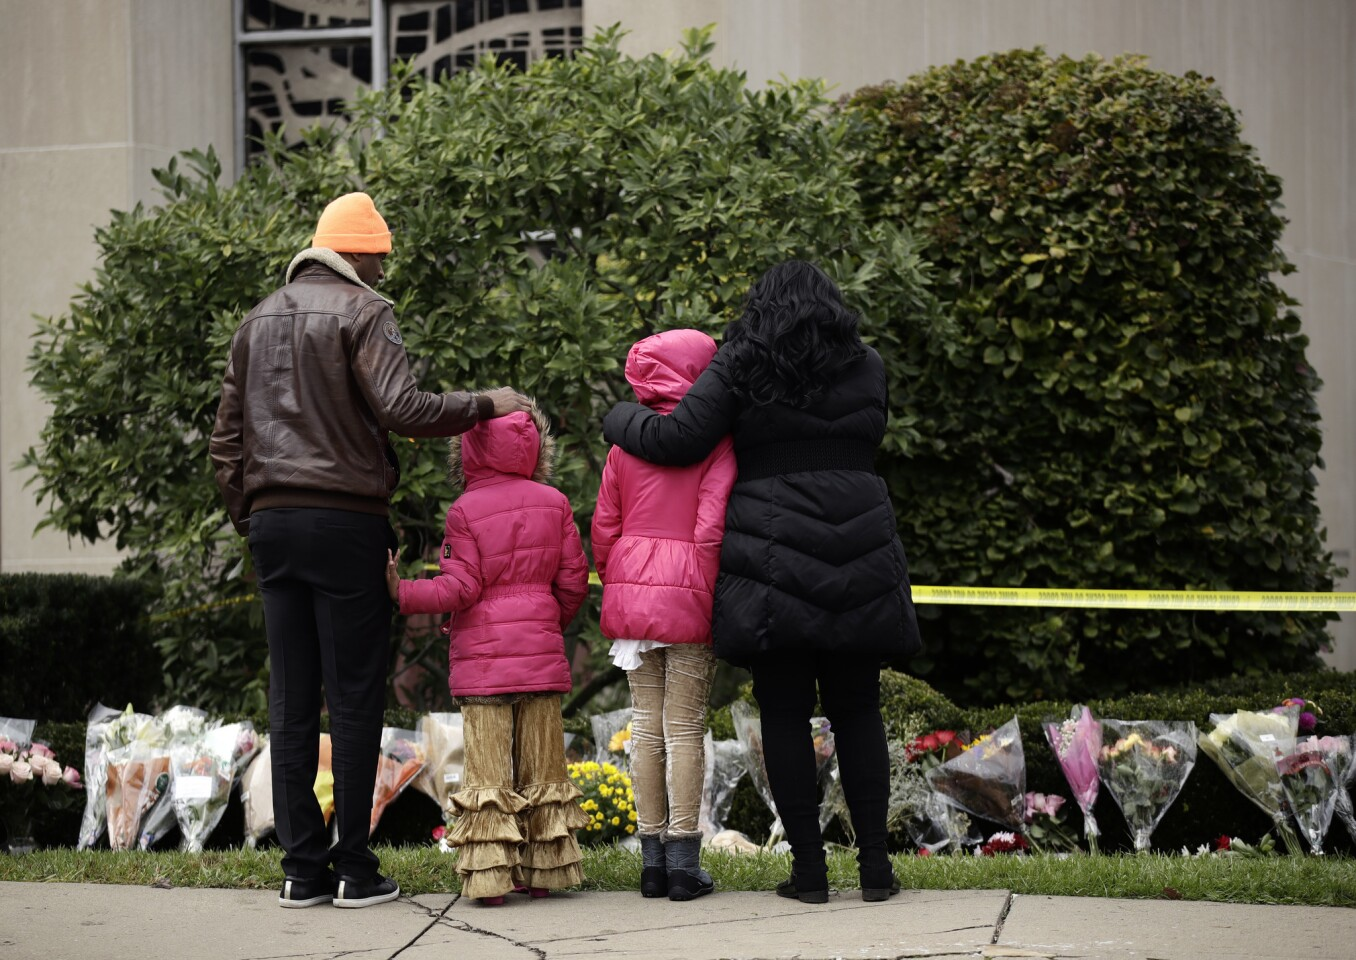 Mourners view a row of flowers at a memorial for the victims of the Tree of Life Synagogue shooting in Pittsburgh on Sunday.